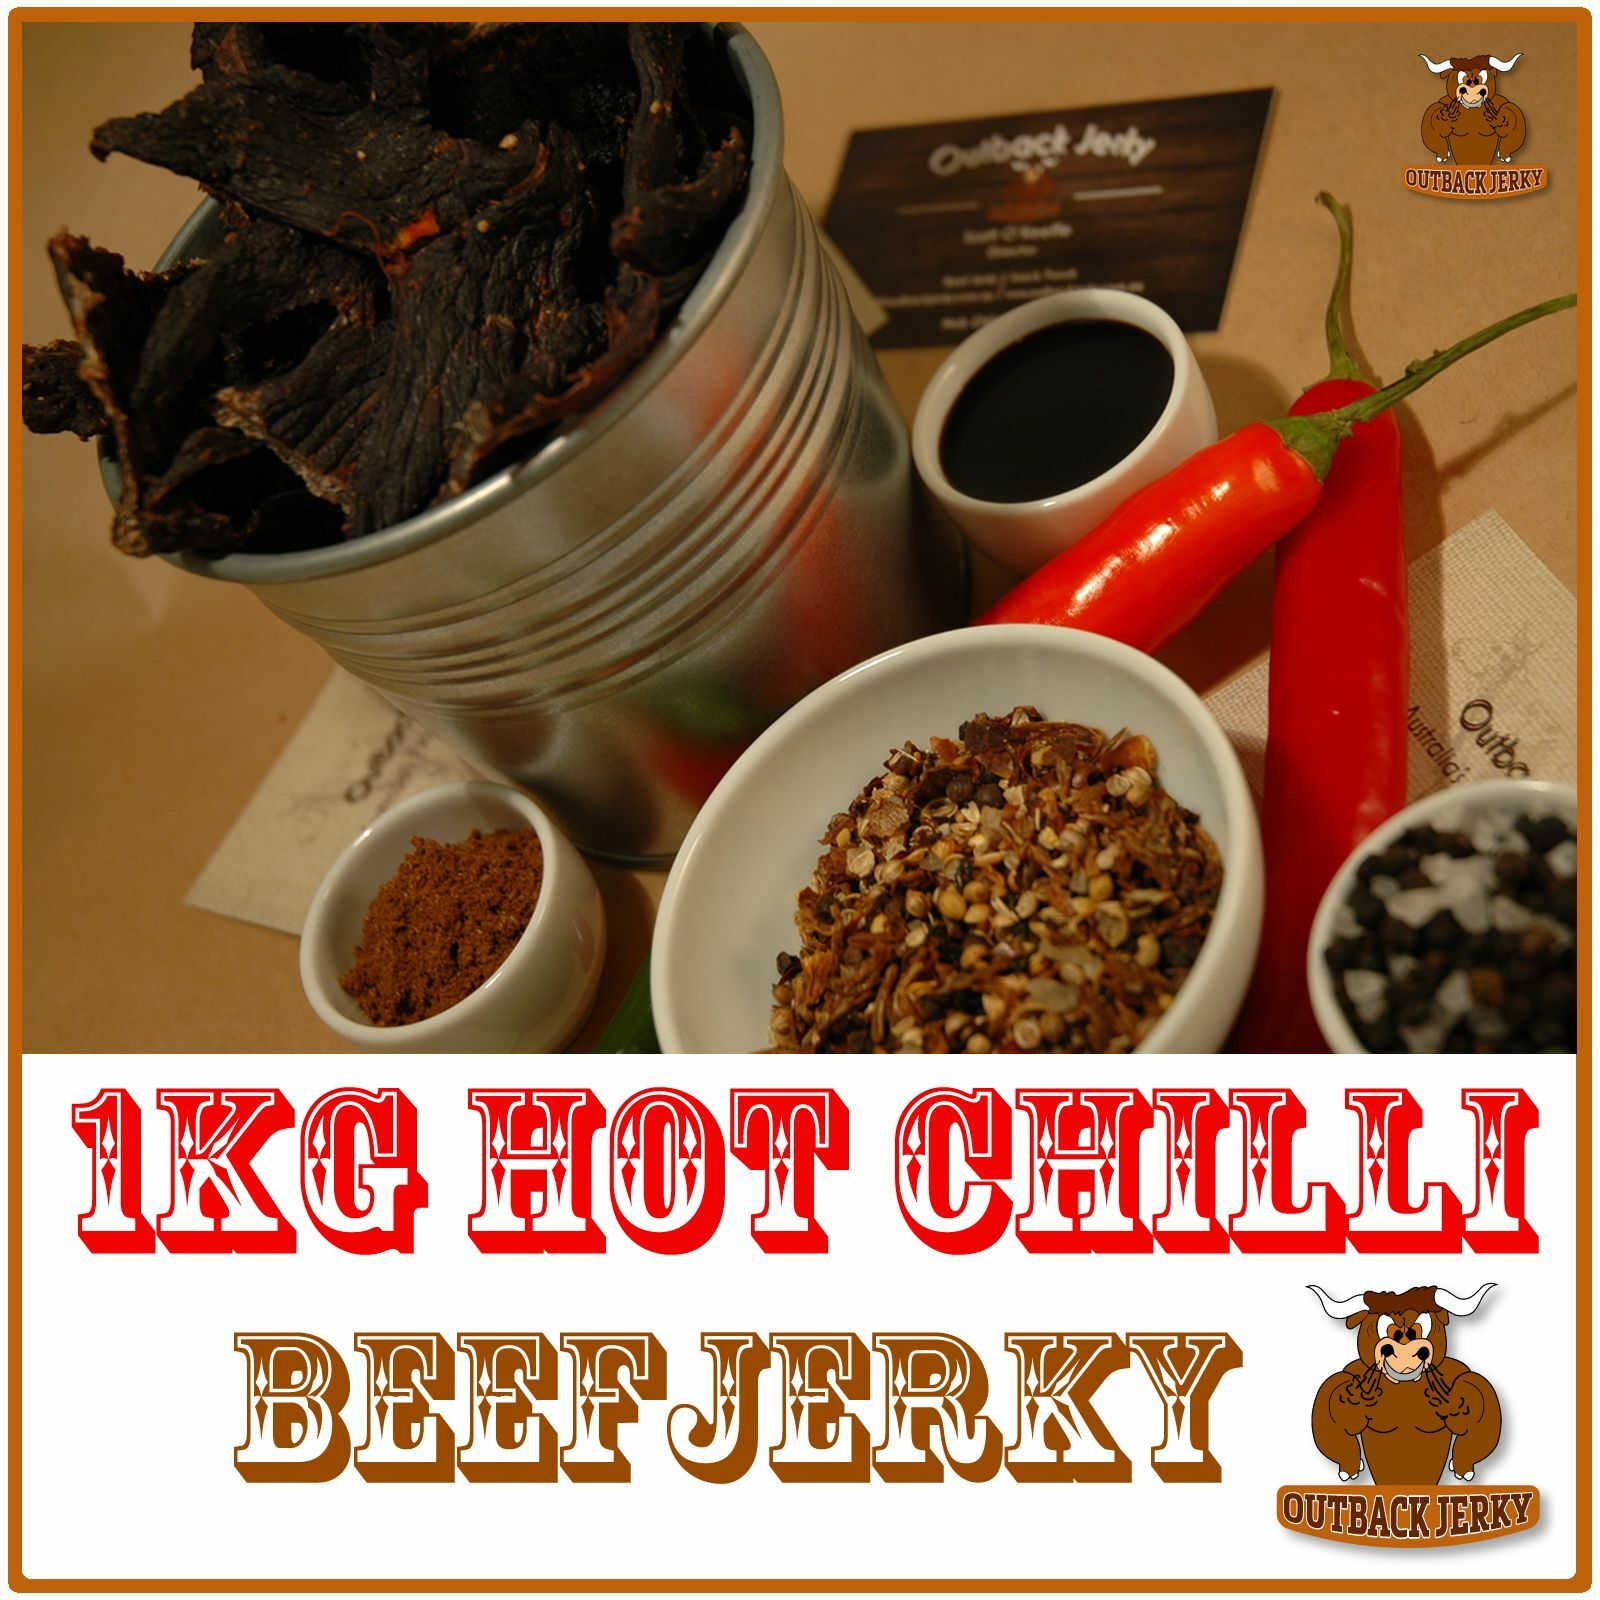 BEEF JERKY HOT CHILLI 1KG Hi PROTEIN LOW CARBOHYDRATE PRESERVATIVE FREE SNACK